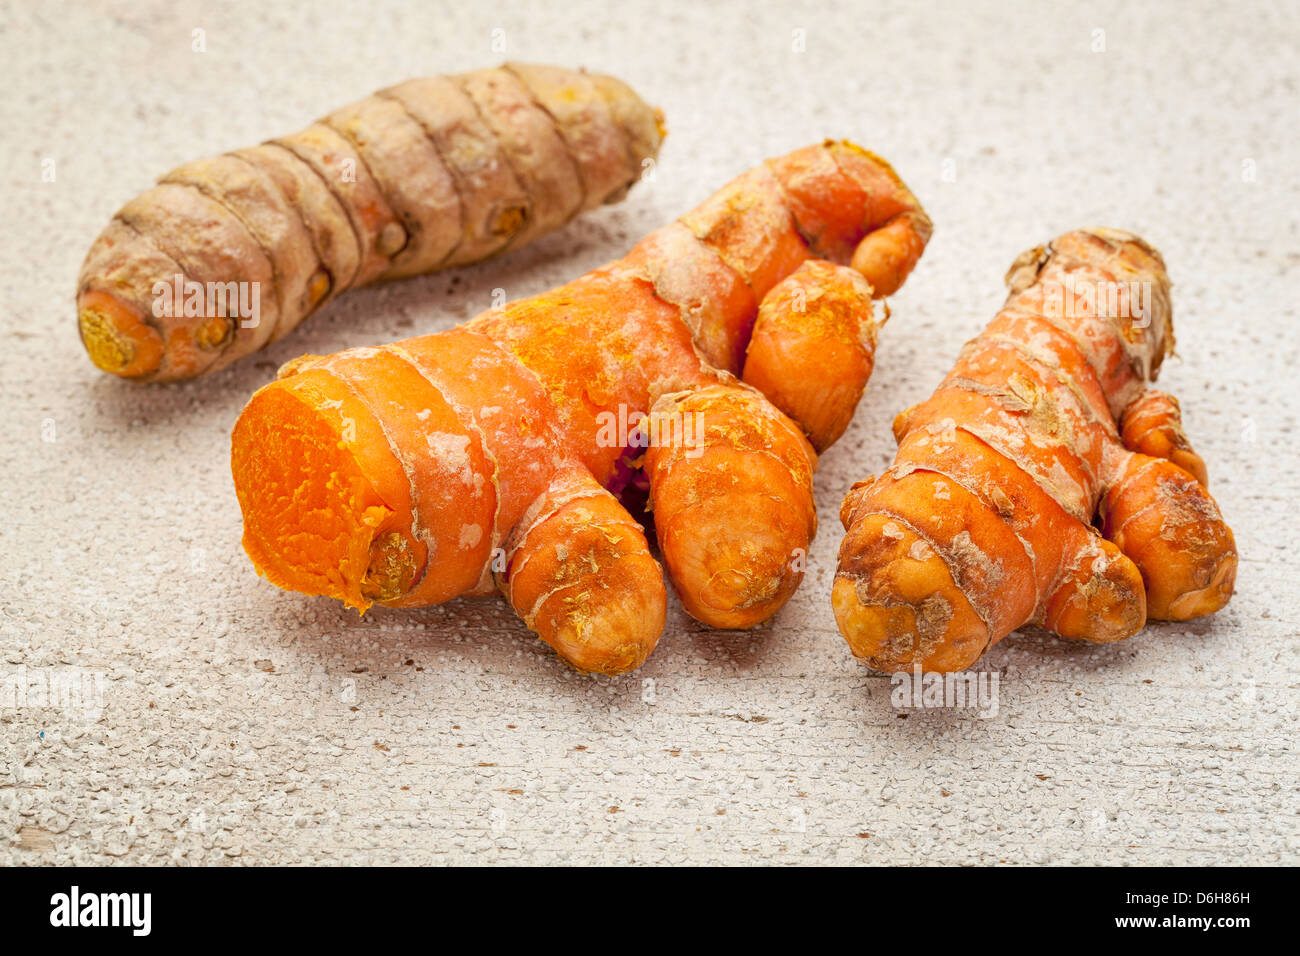 turmeric root on a white painted rough barn wood surface - Stock Image